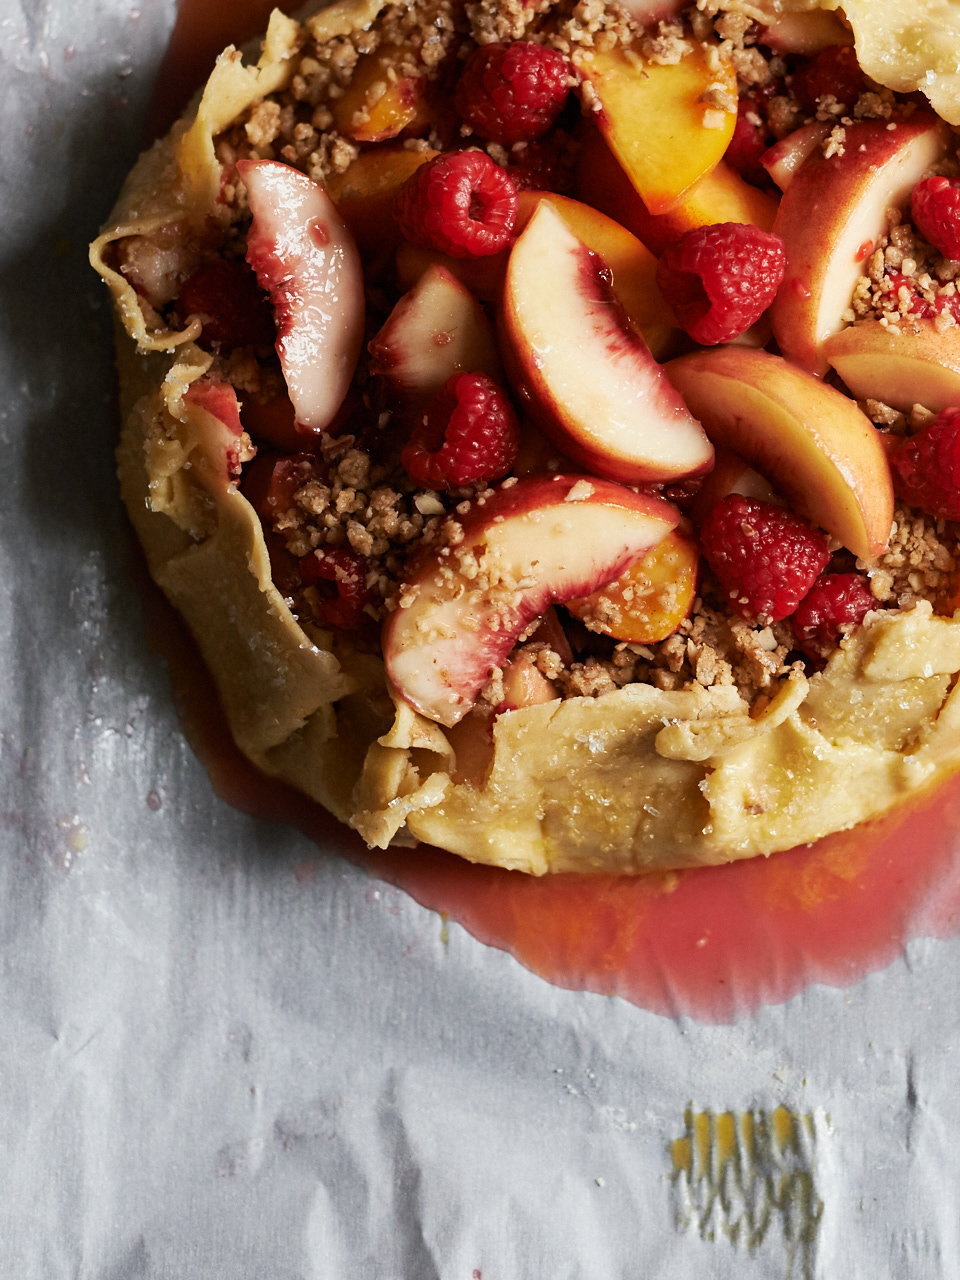 Peach & Raspberry Galette with Almond Crumbs | Flavors of Light